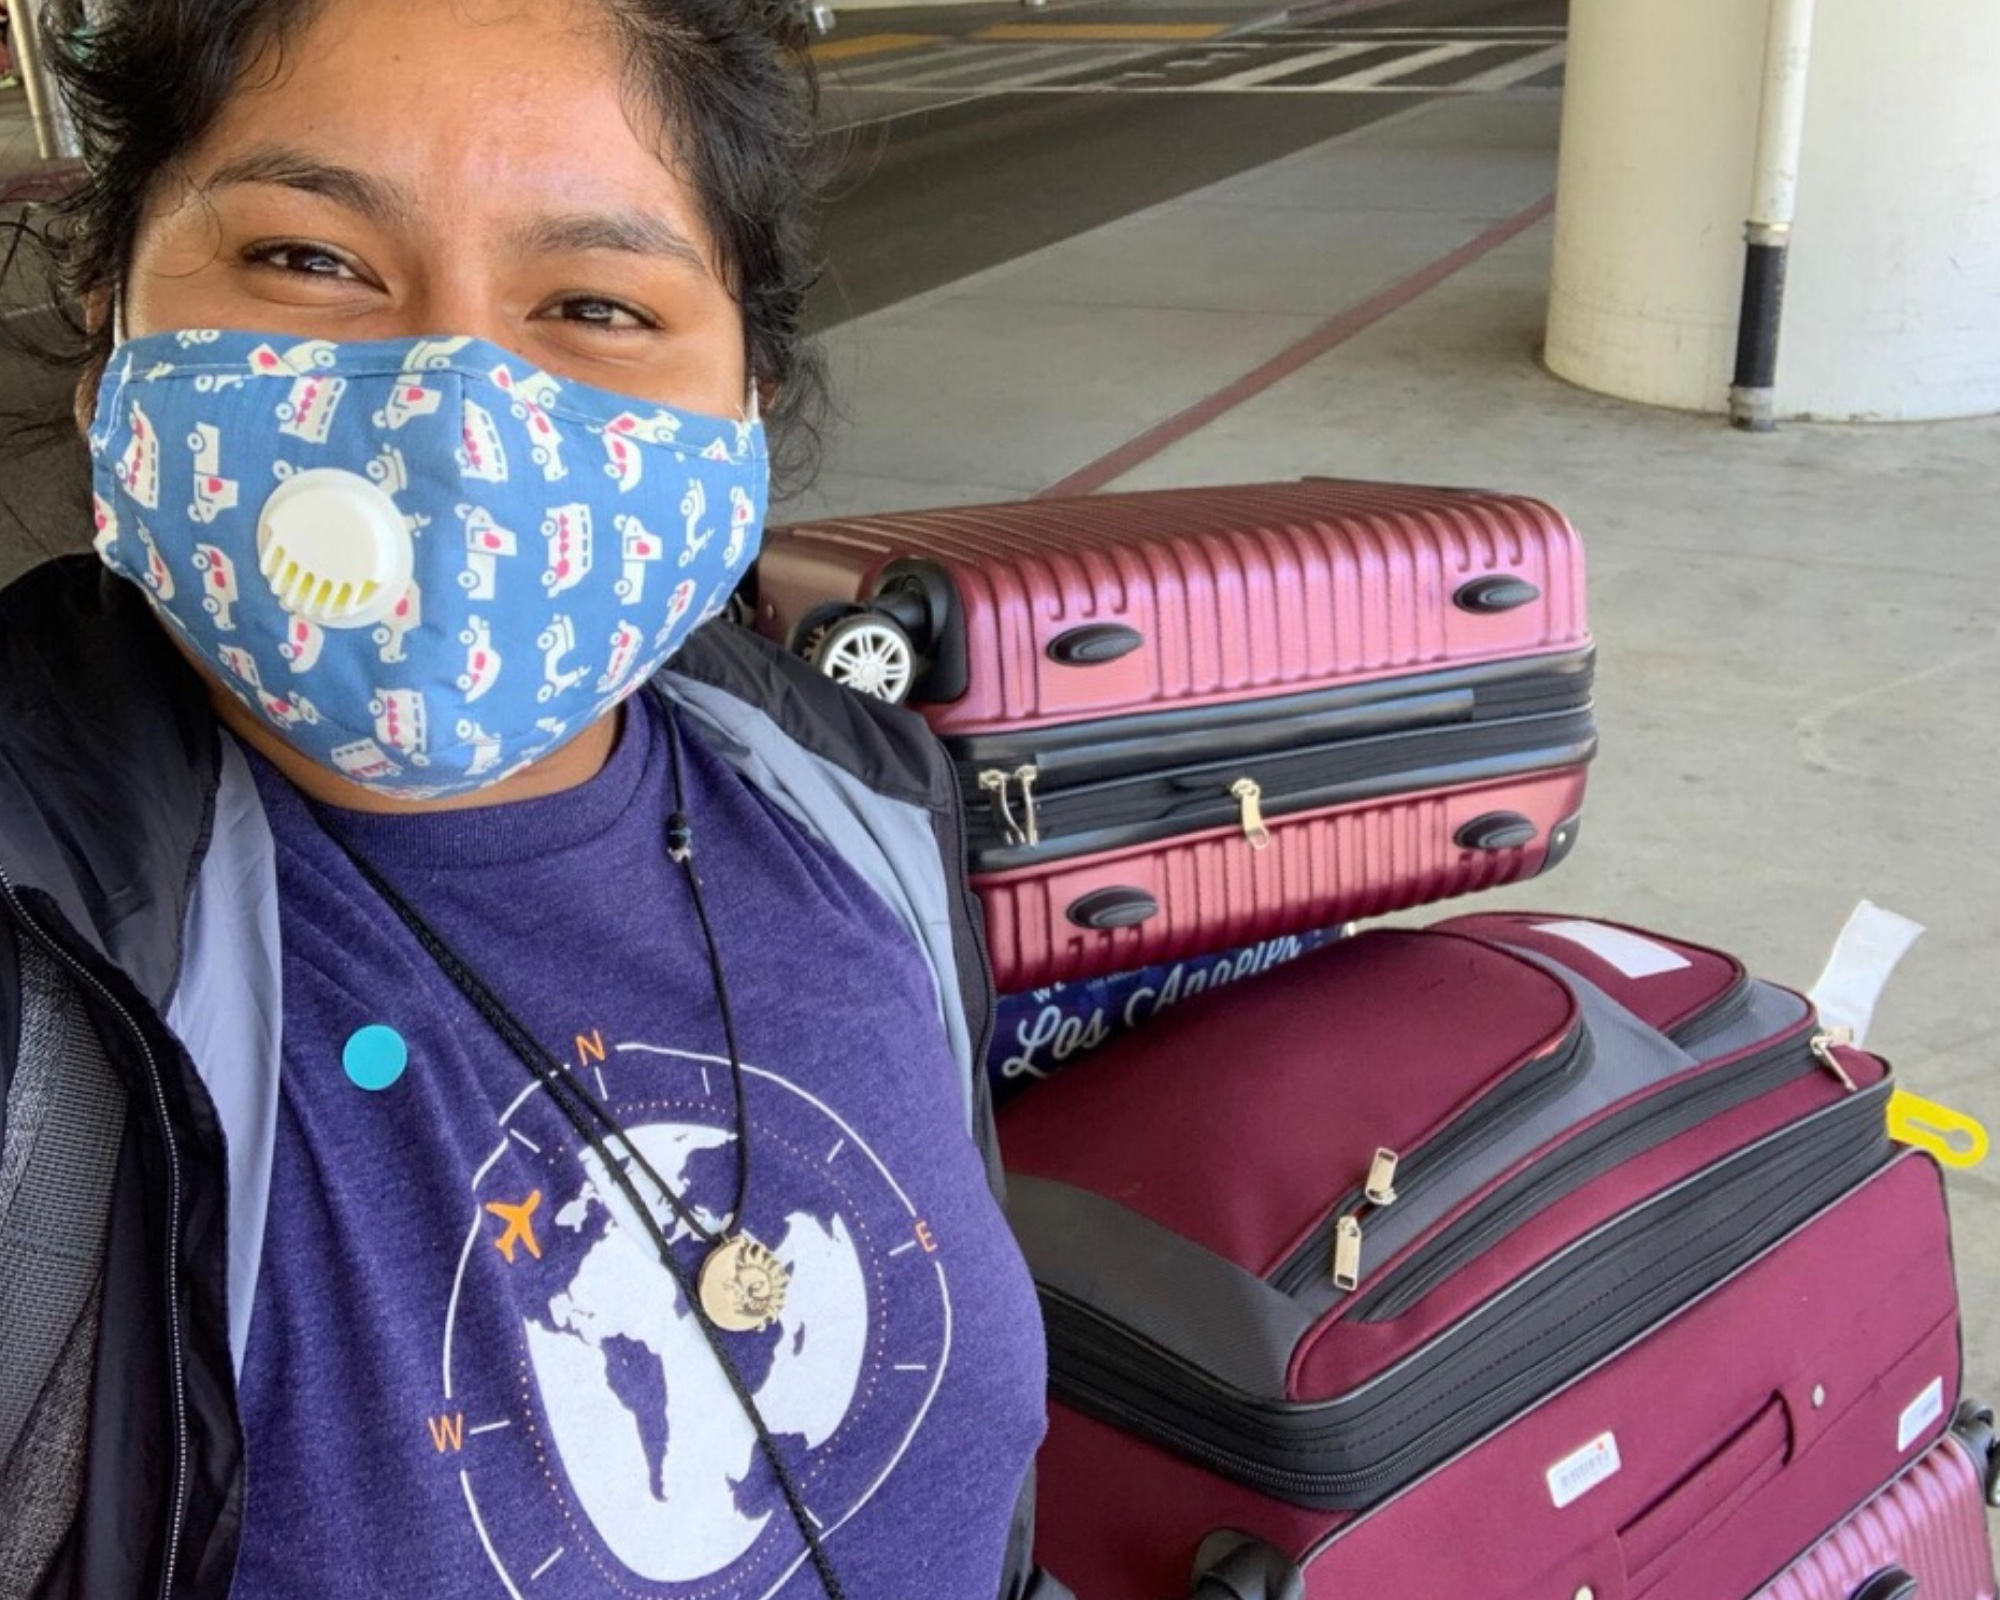 Gilman Scholar Daisy Hernandez from University of California, Santa Barbara needed to get back home from Thailand, but was notified that all flights were suspended. ECA's USA Study Abroad Team, the Institute of International Education (IIE) Gilman team, and the Assistant Cultural Affairs Officer at U.S. Embassy Thailand secured her a special commercial flight from Bangkok.